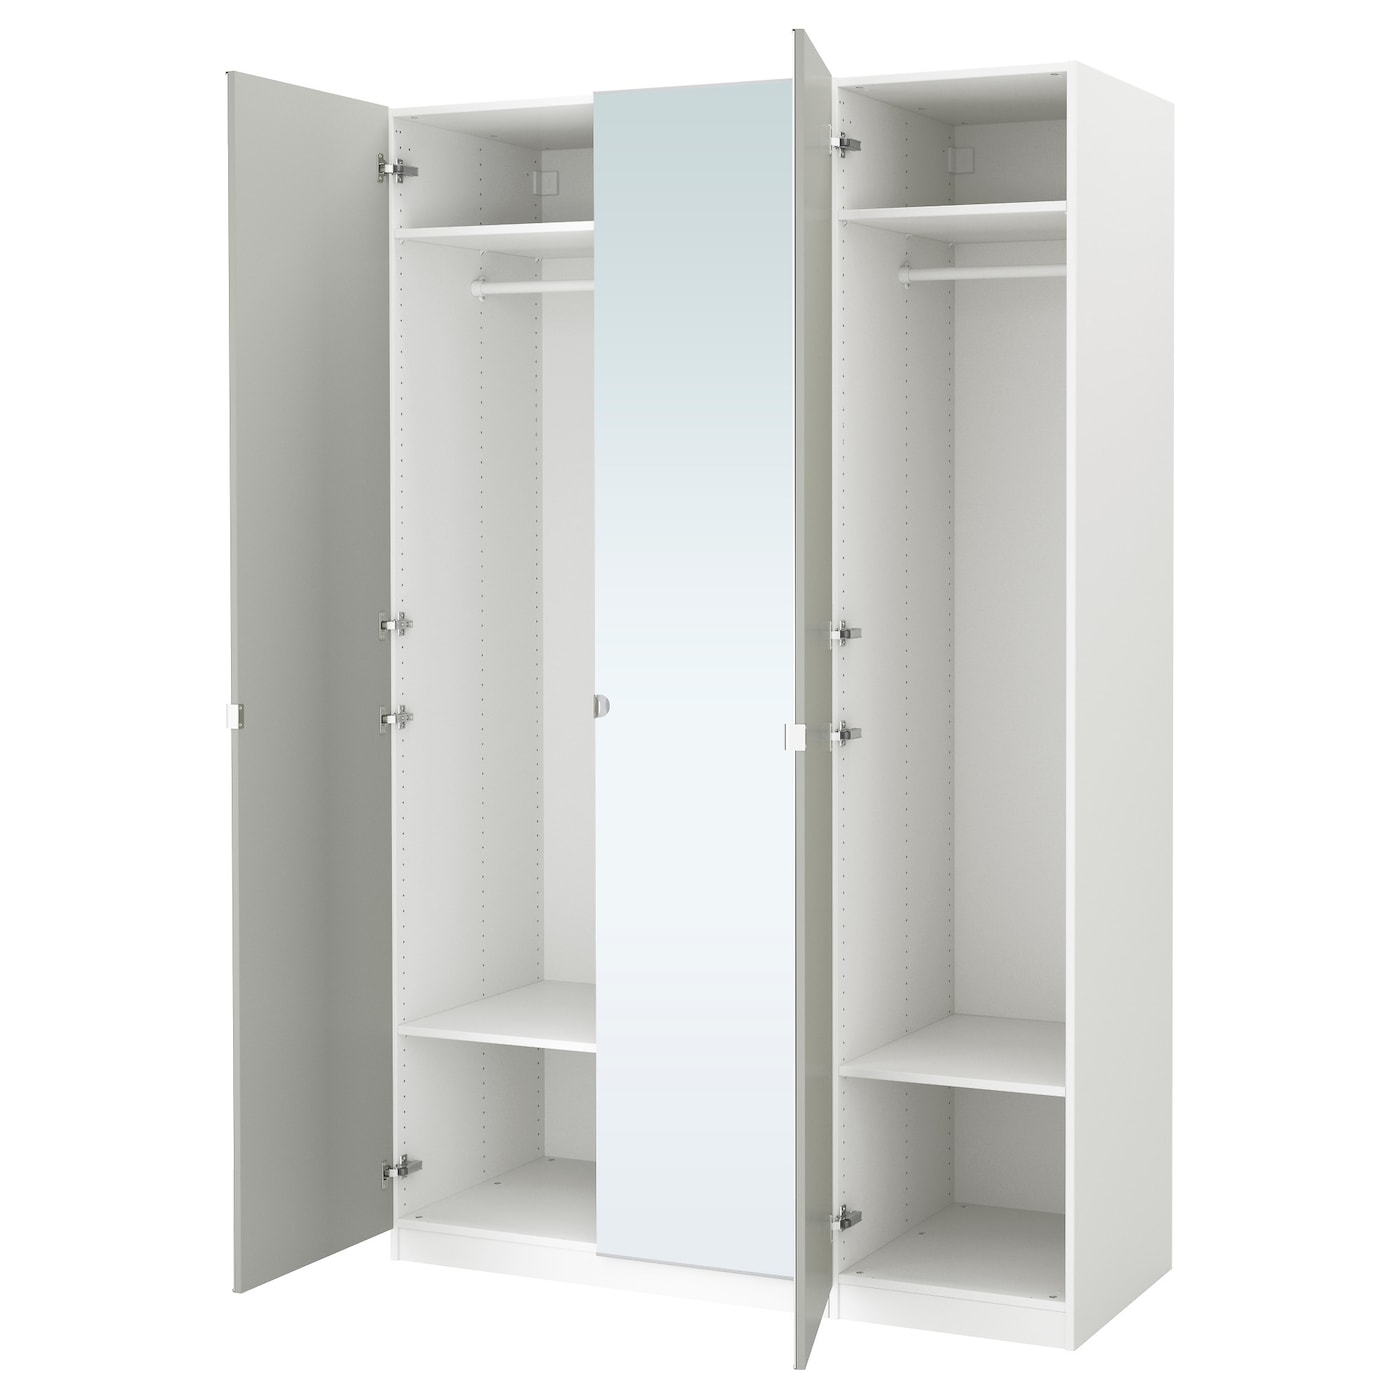 Pax wardrobe white vikedal mirror glass 150x60x236 cm ikea for Armoire penderie avec miroir